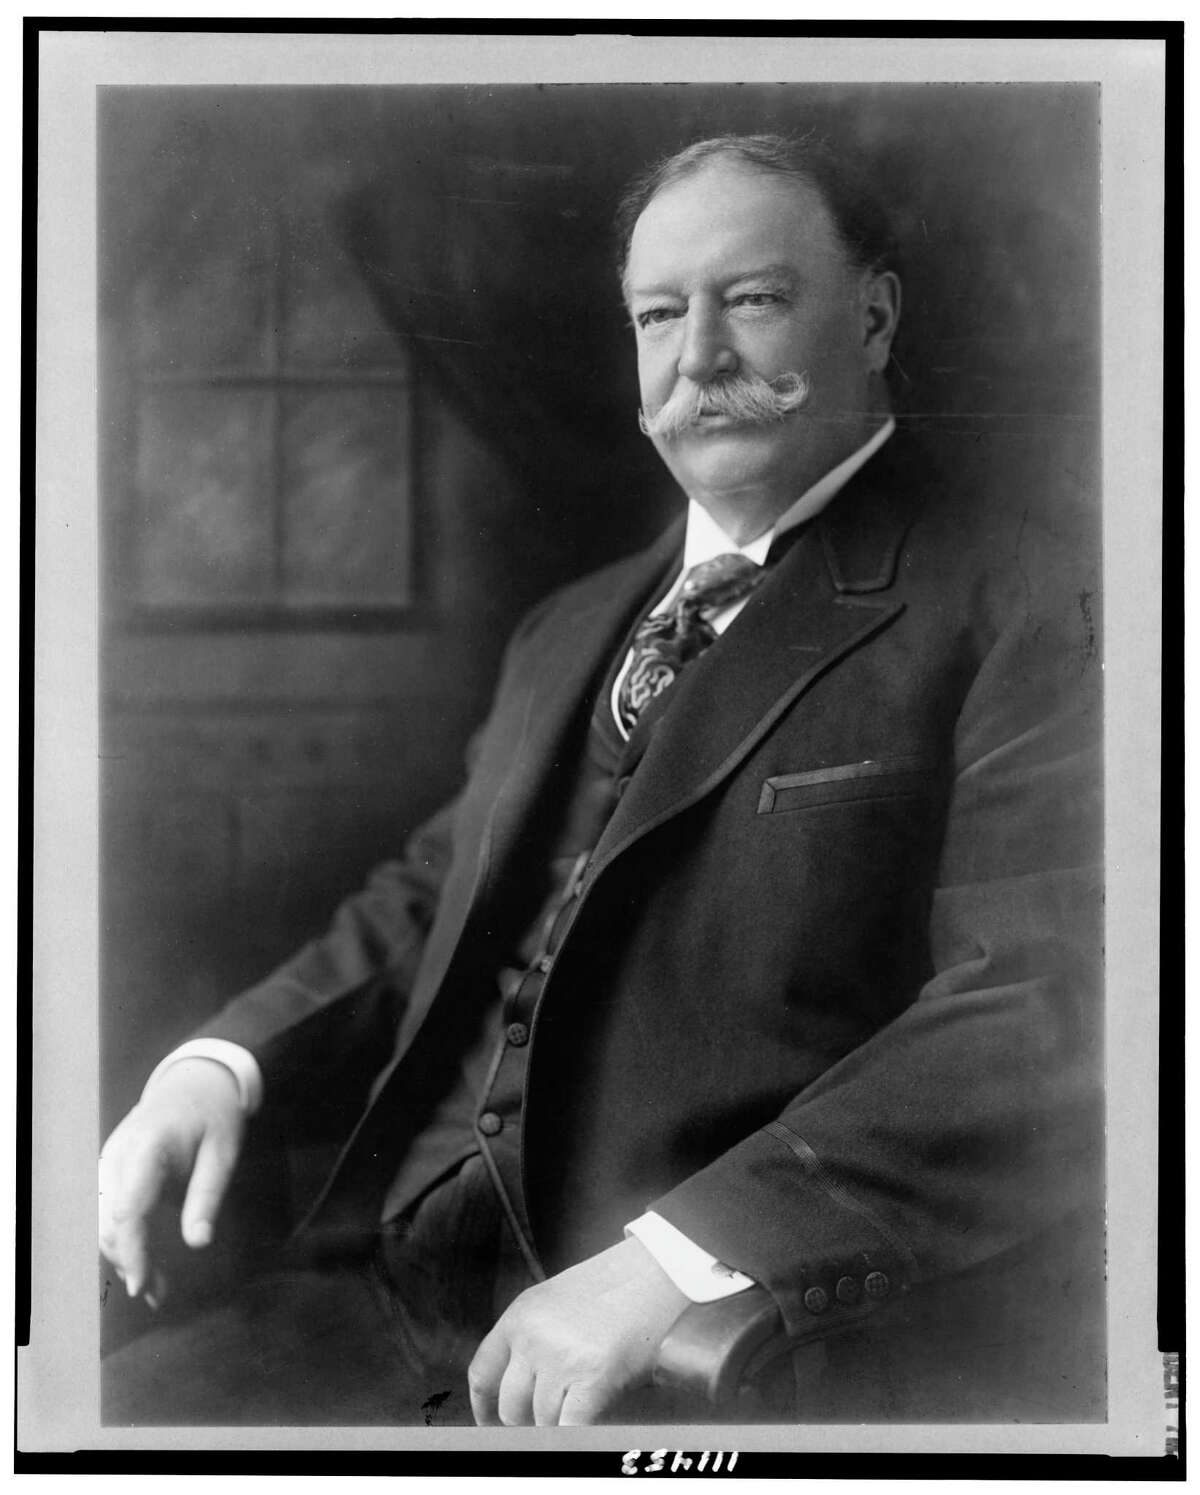 WILLIAM HOWARD TAFT, 1909-13 The 27th president had a wrestling background, as he was Yale's intramural heavyweight champion.